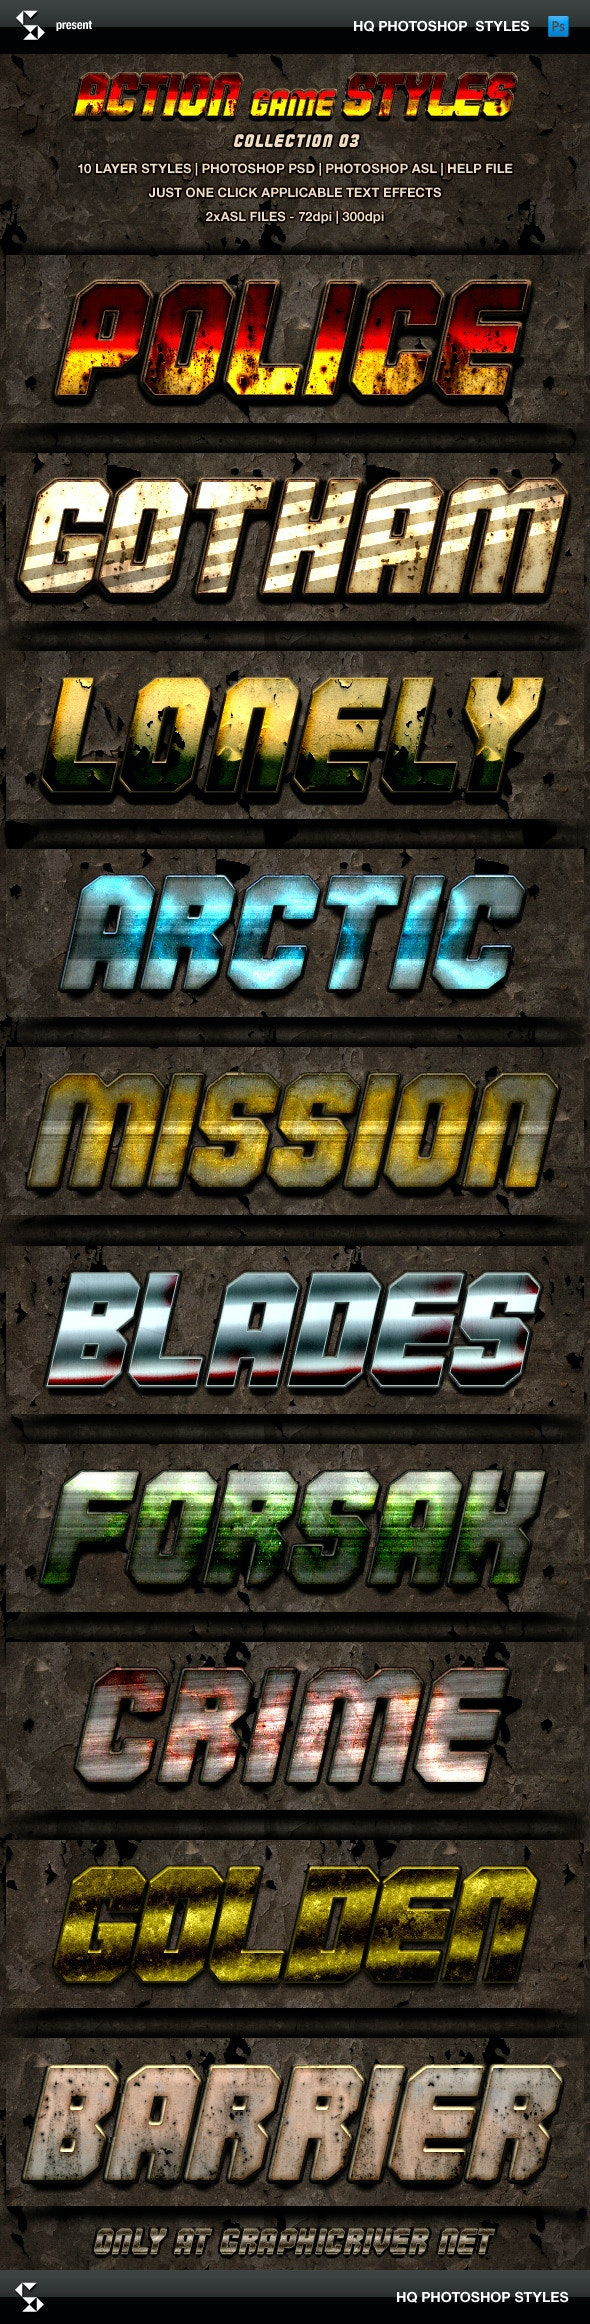 Action Game Styles - Collection 3 - Text Effects Styles